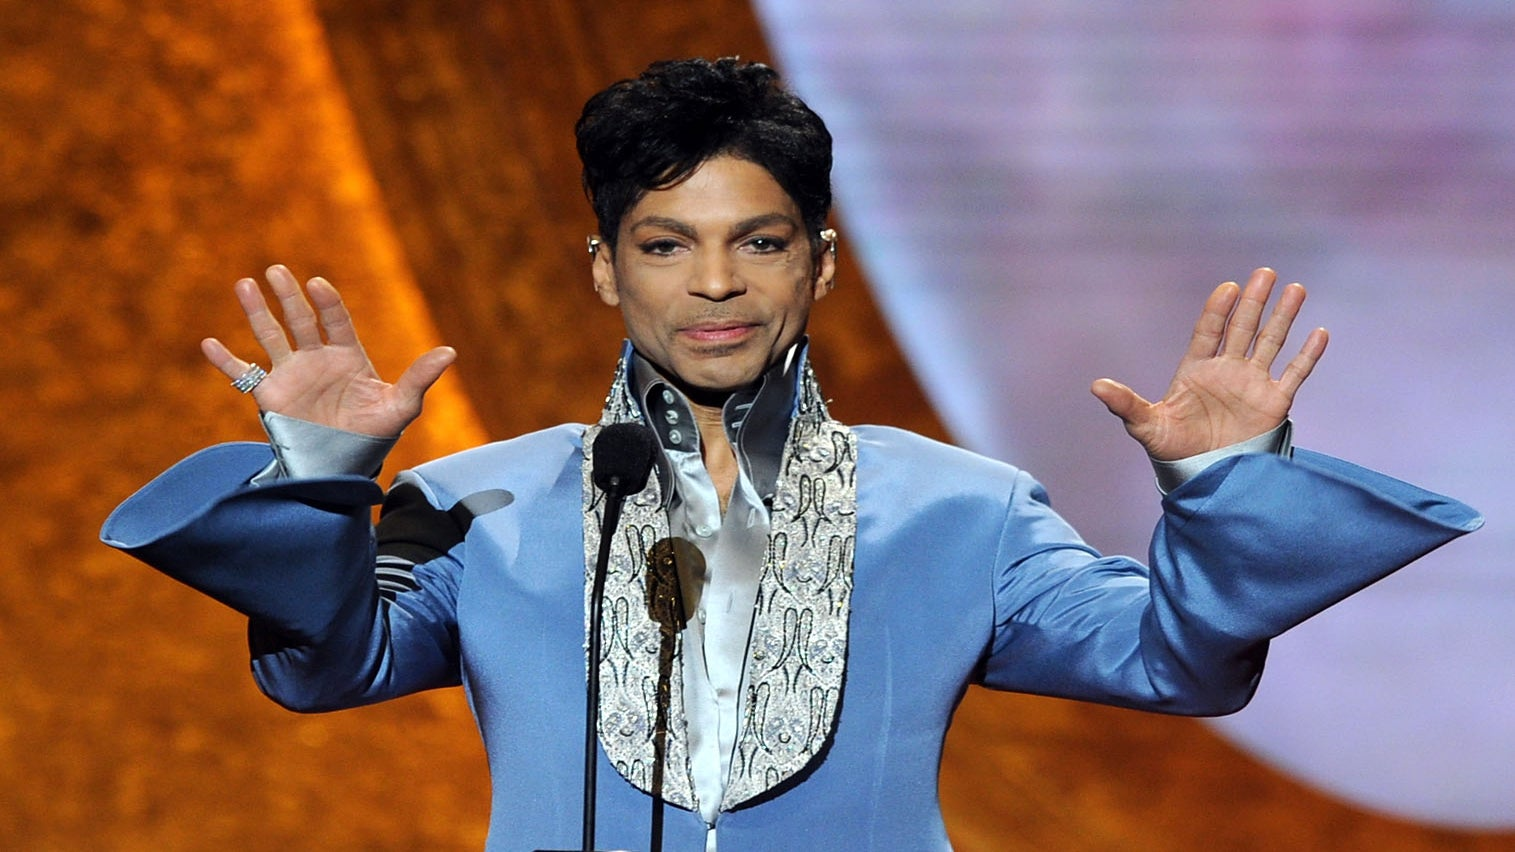 Twitter Wasn't Happy About the Billboard Music Awards Prince Tribute